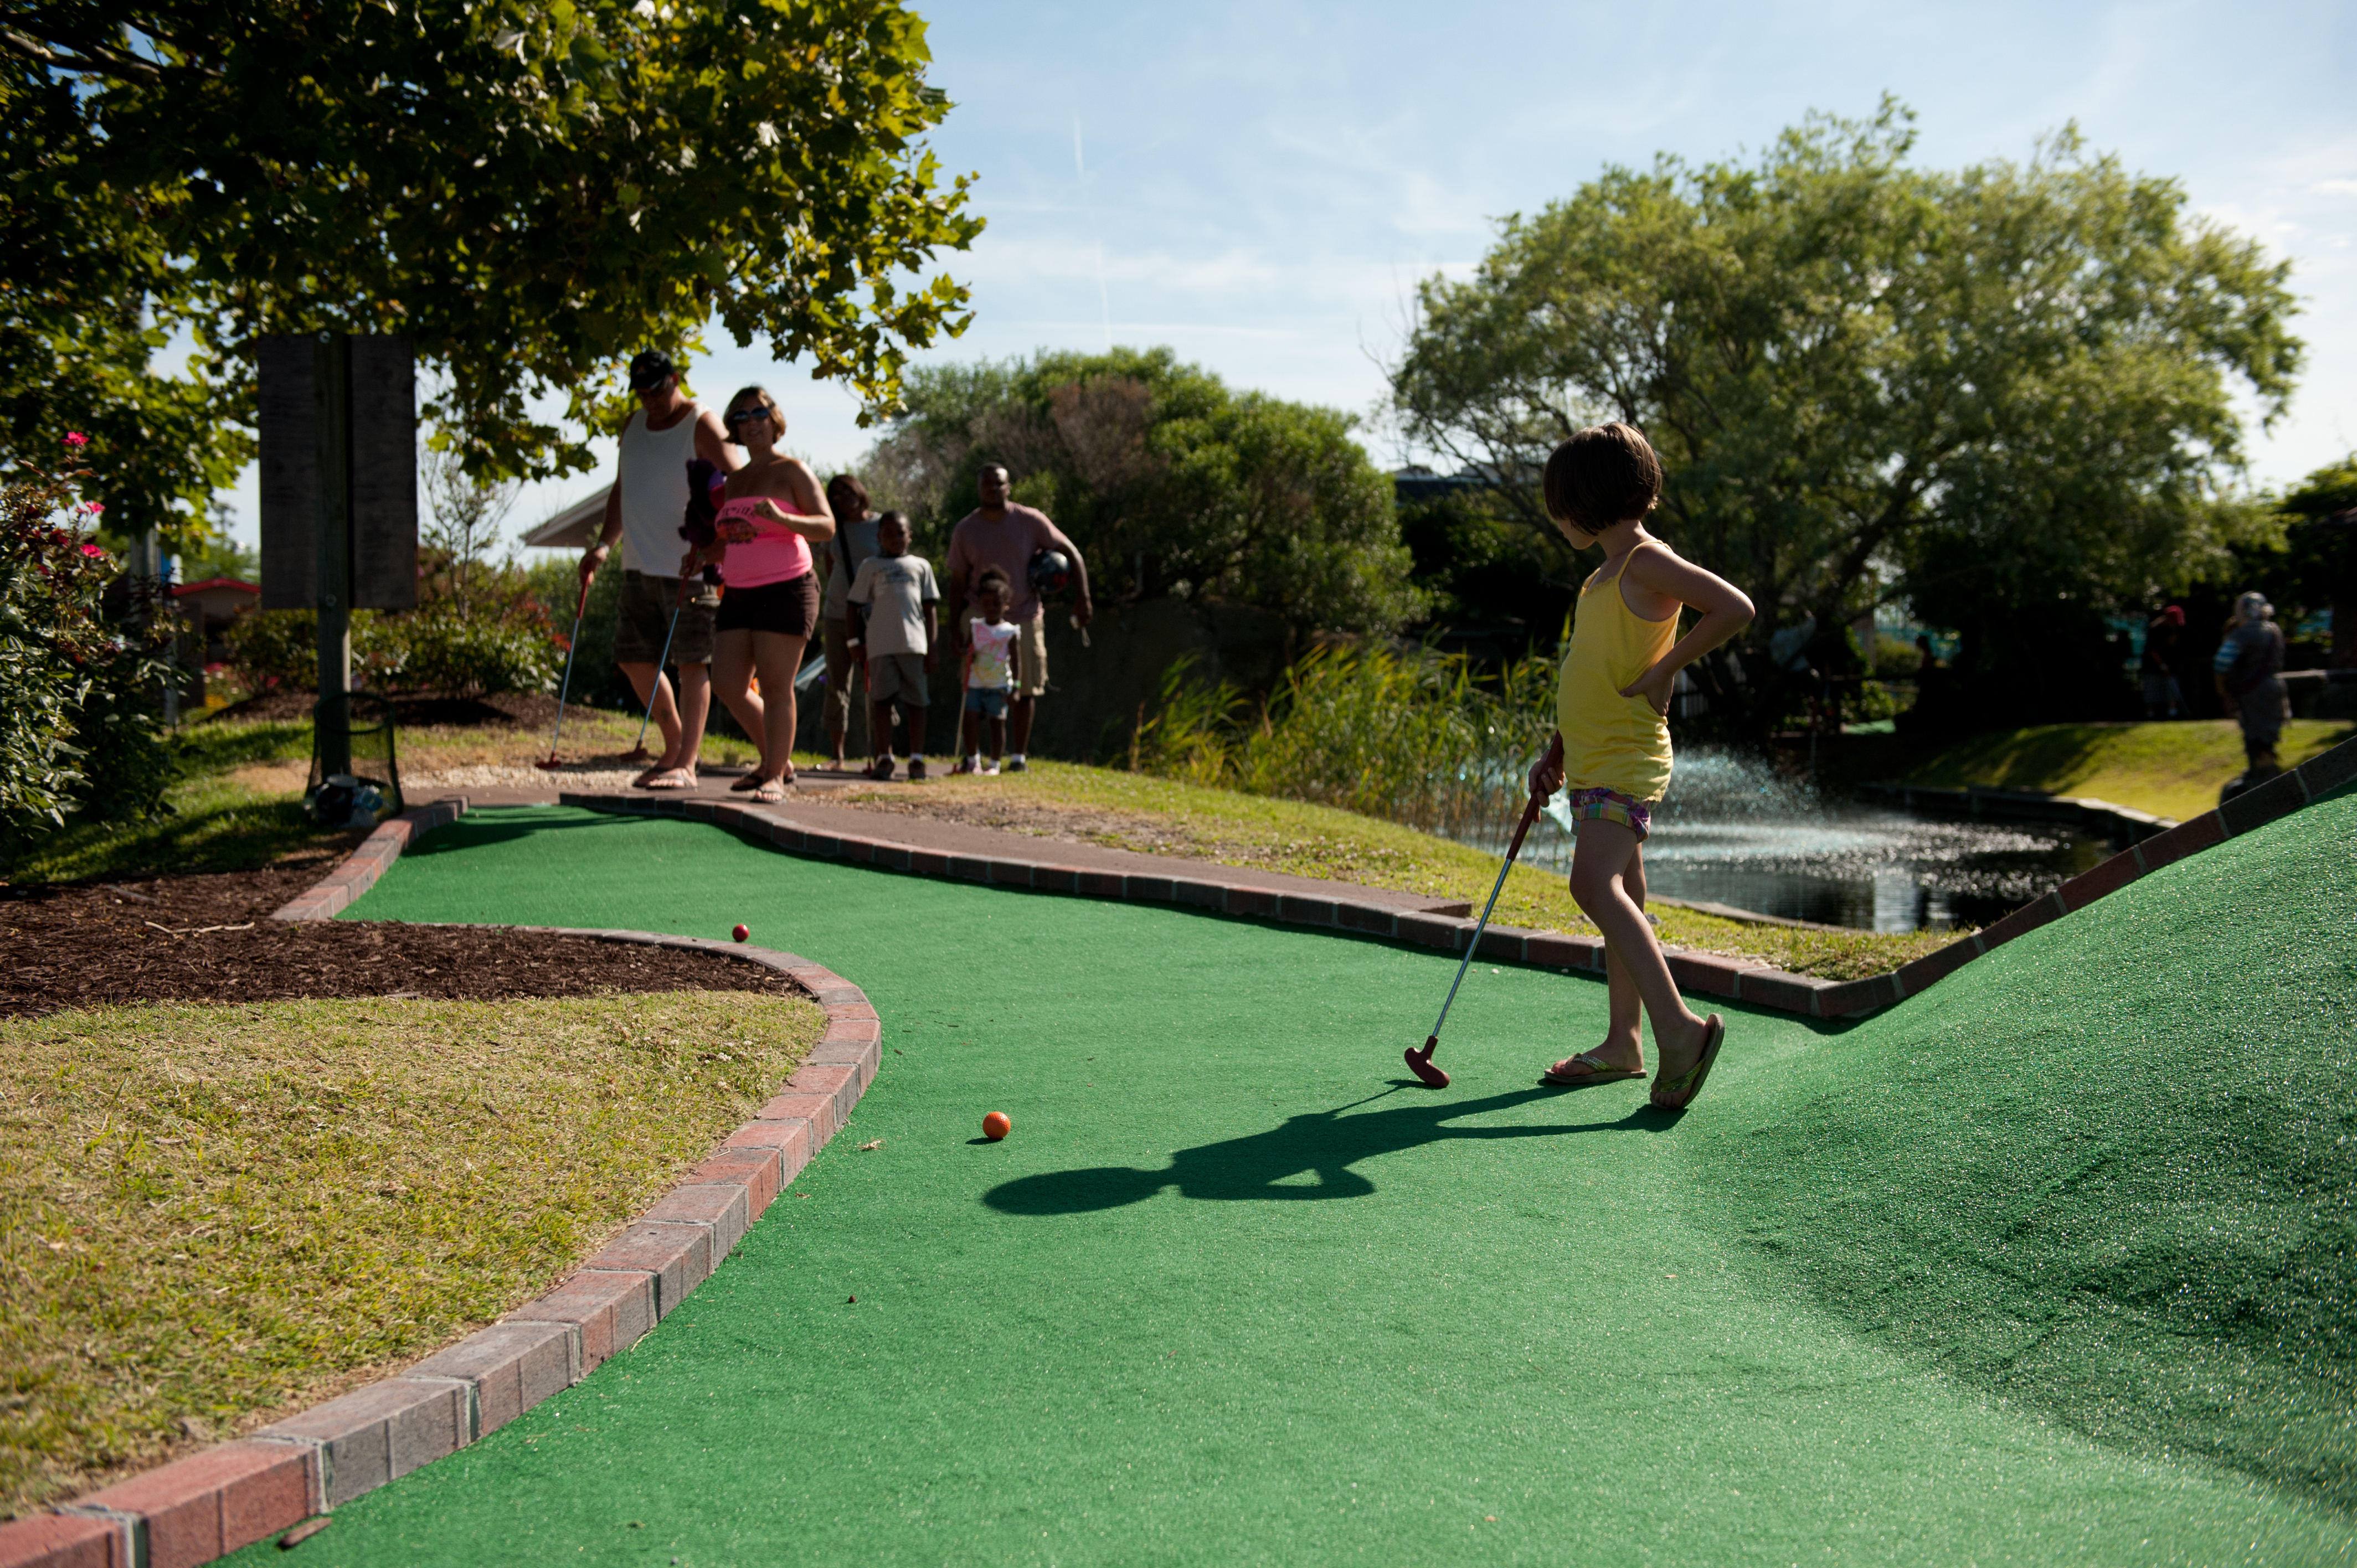 a young girl with short dark hair playing miniature golf with her parents